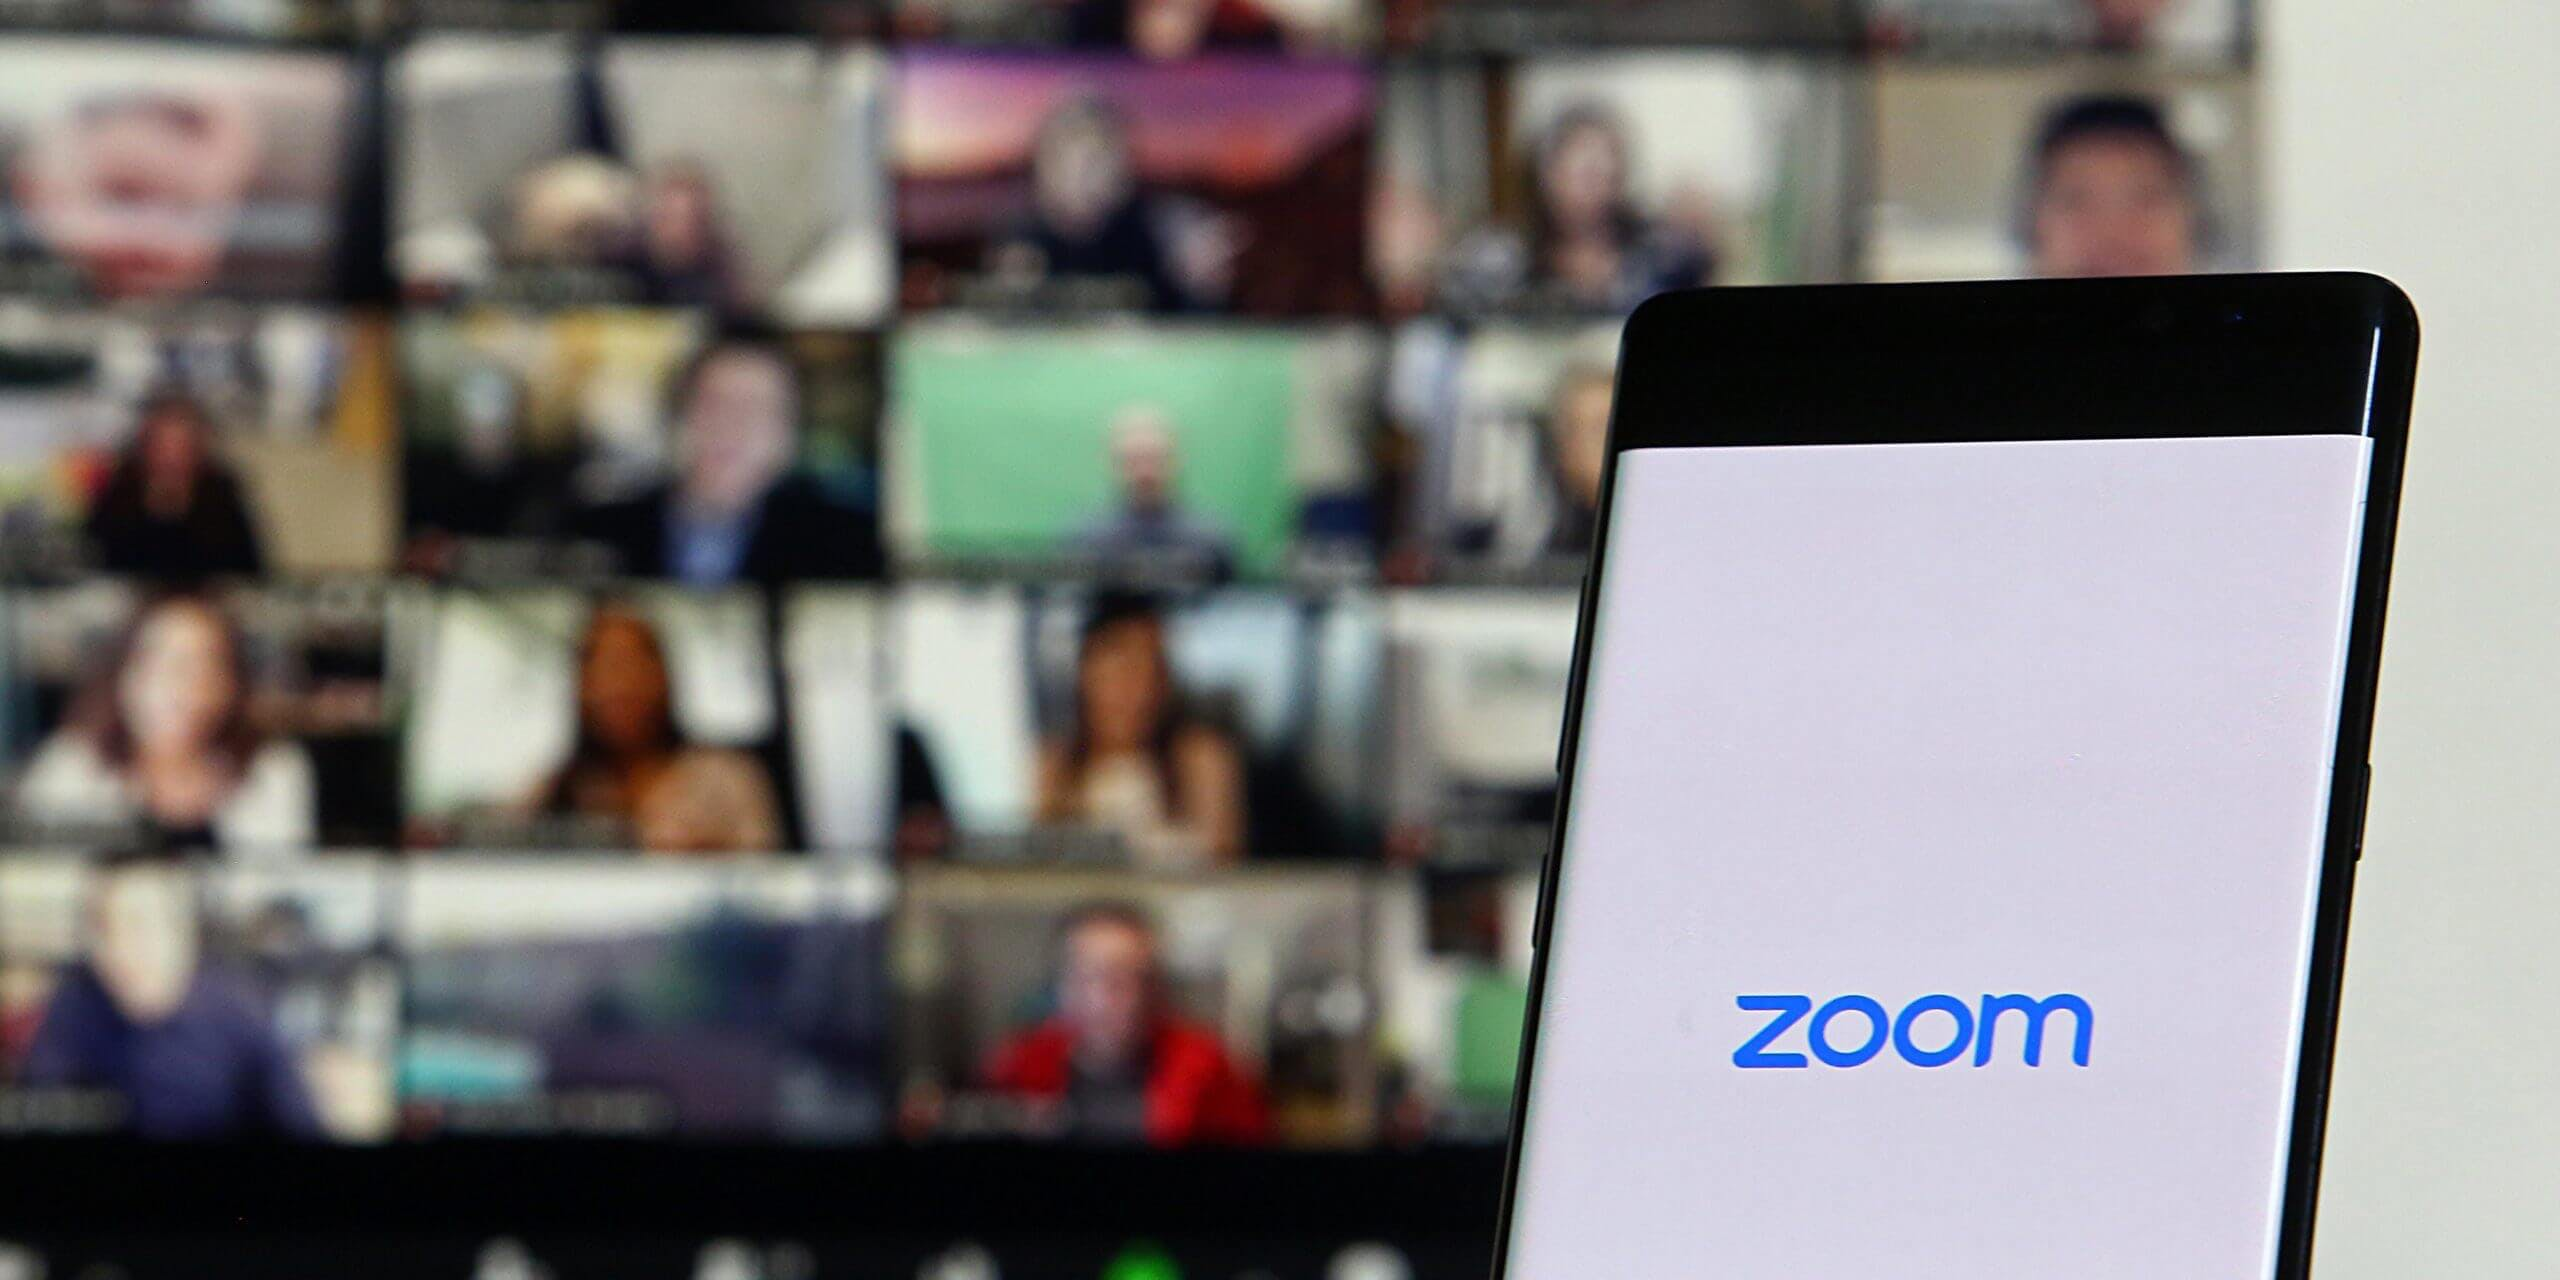 Alternatives to Zoom video conferencing